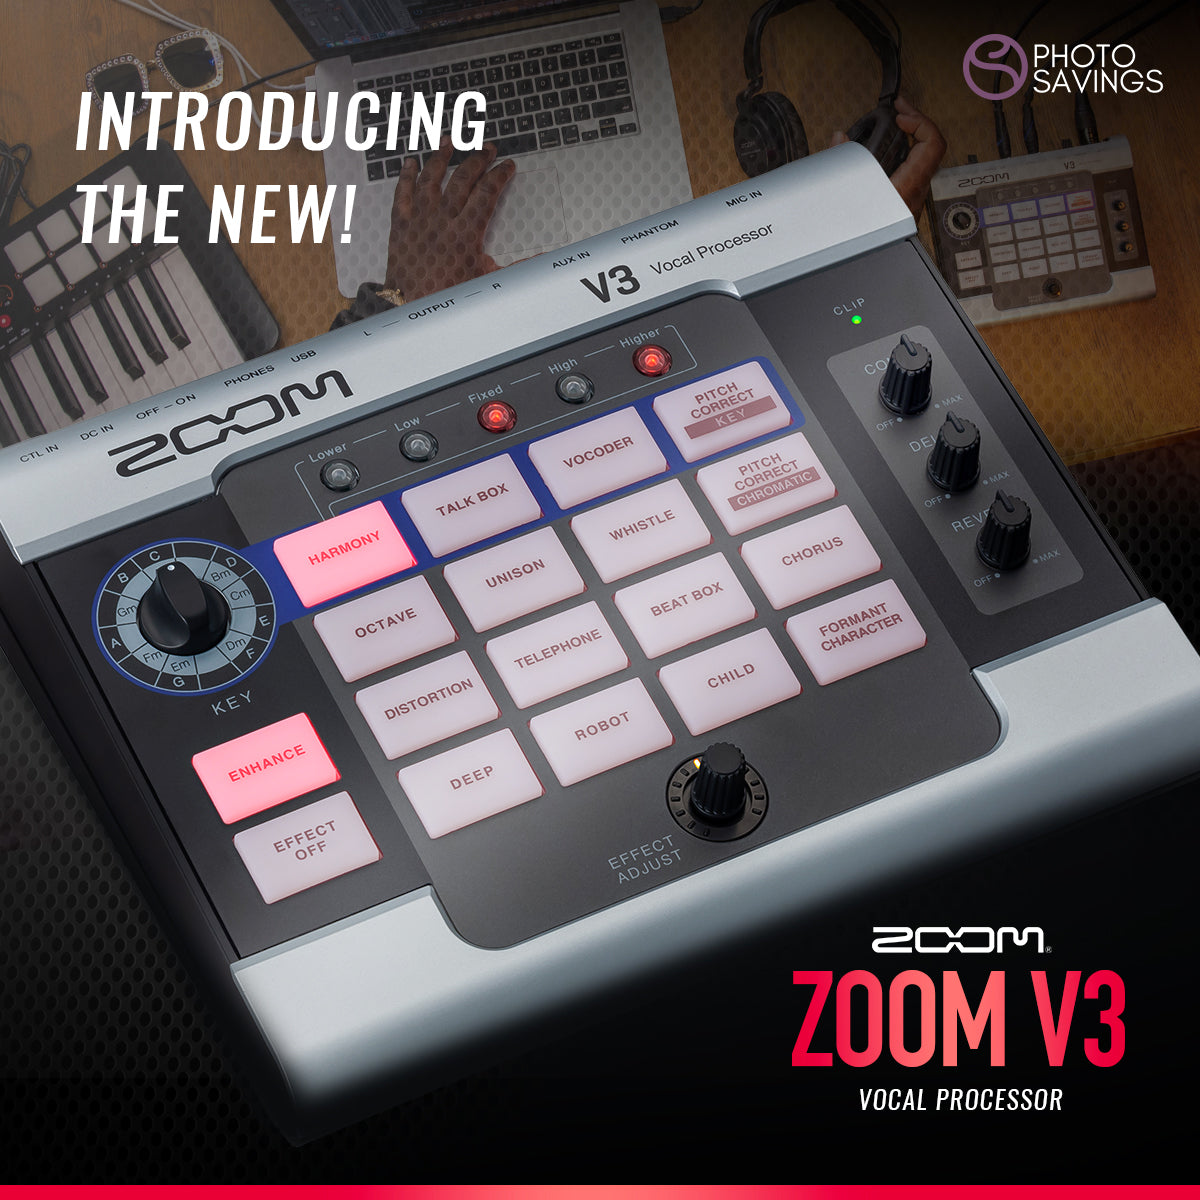 New zoom v3 vocal processor